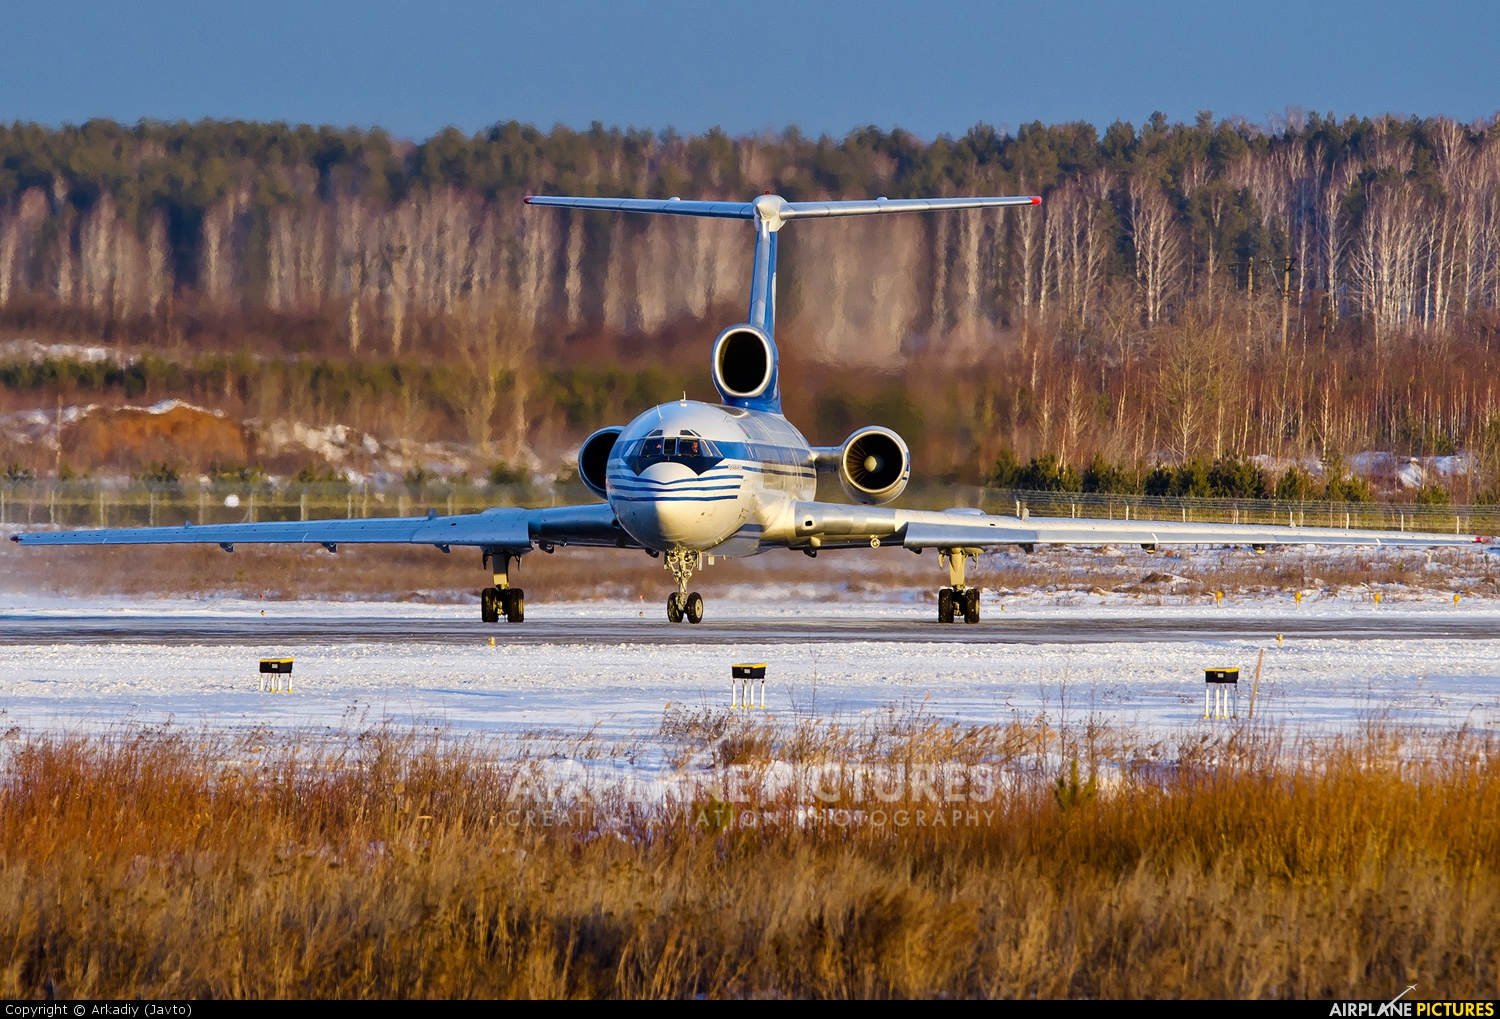 Azerbaijan Airlines 4K-85729 aircraft at Koltsovo - Ekaterinburg